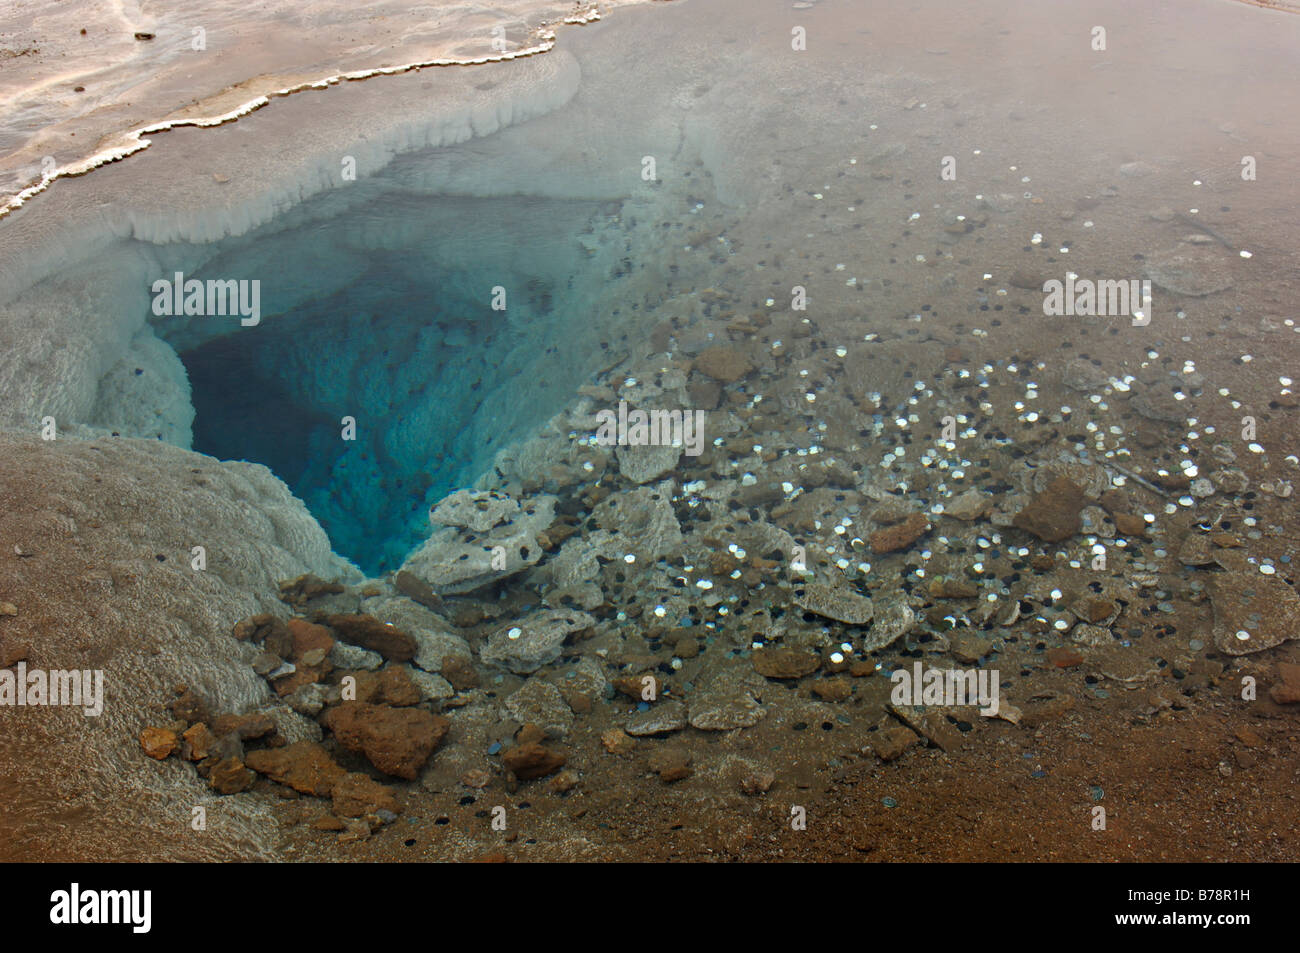 Coins in hot spring, geyser, Iceland, Europe - Stock Image